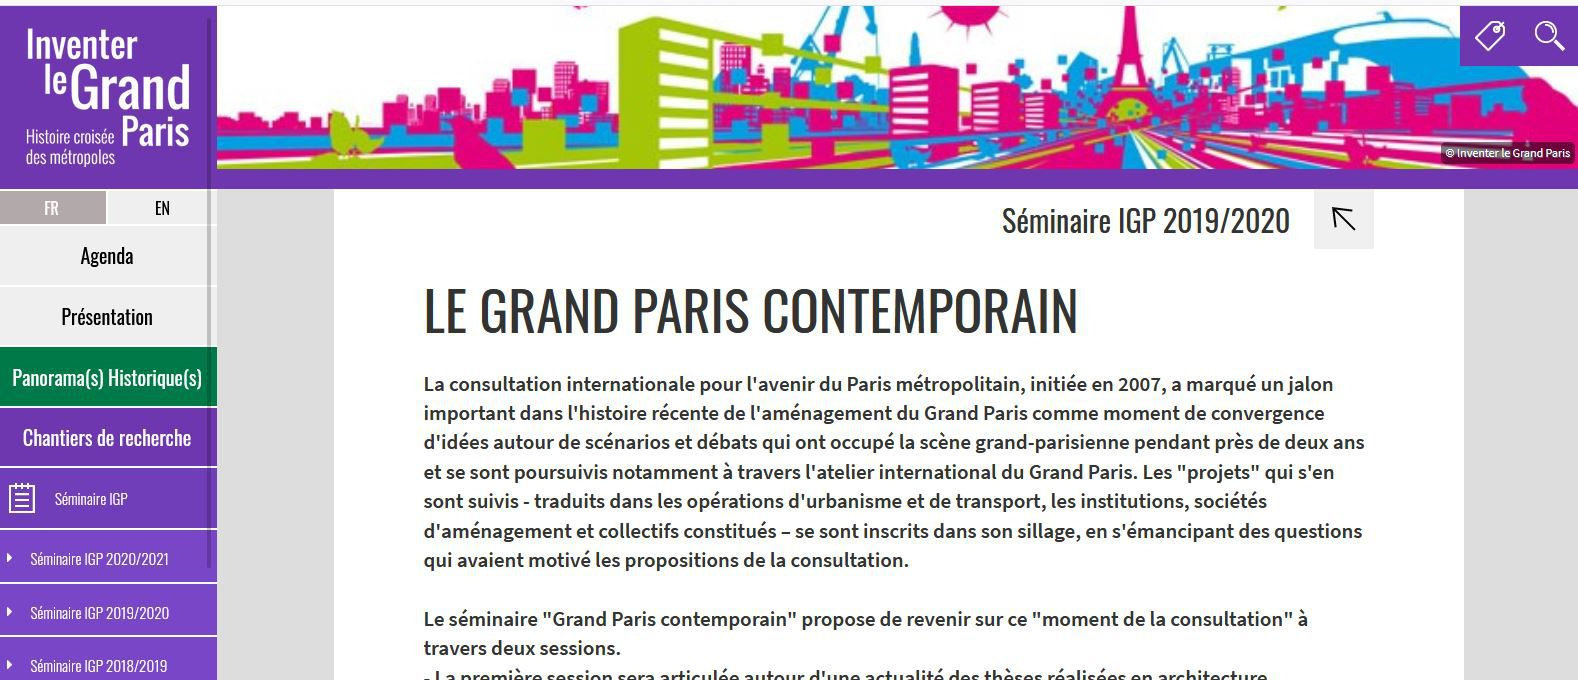 Le Grand Paris contemporain: Séminaire Inventer le Grand Paris